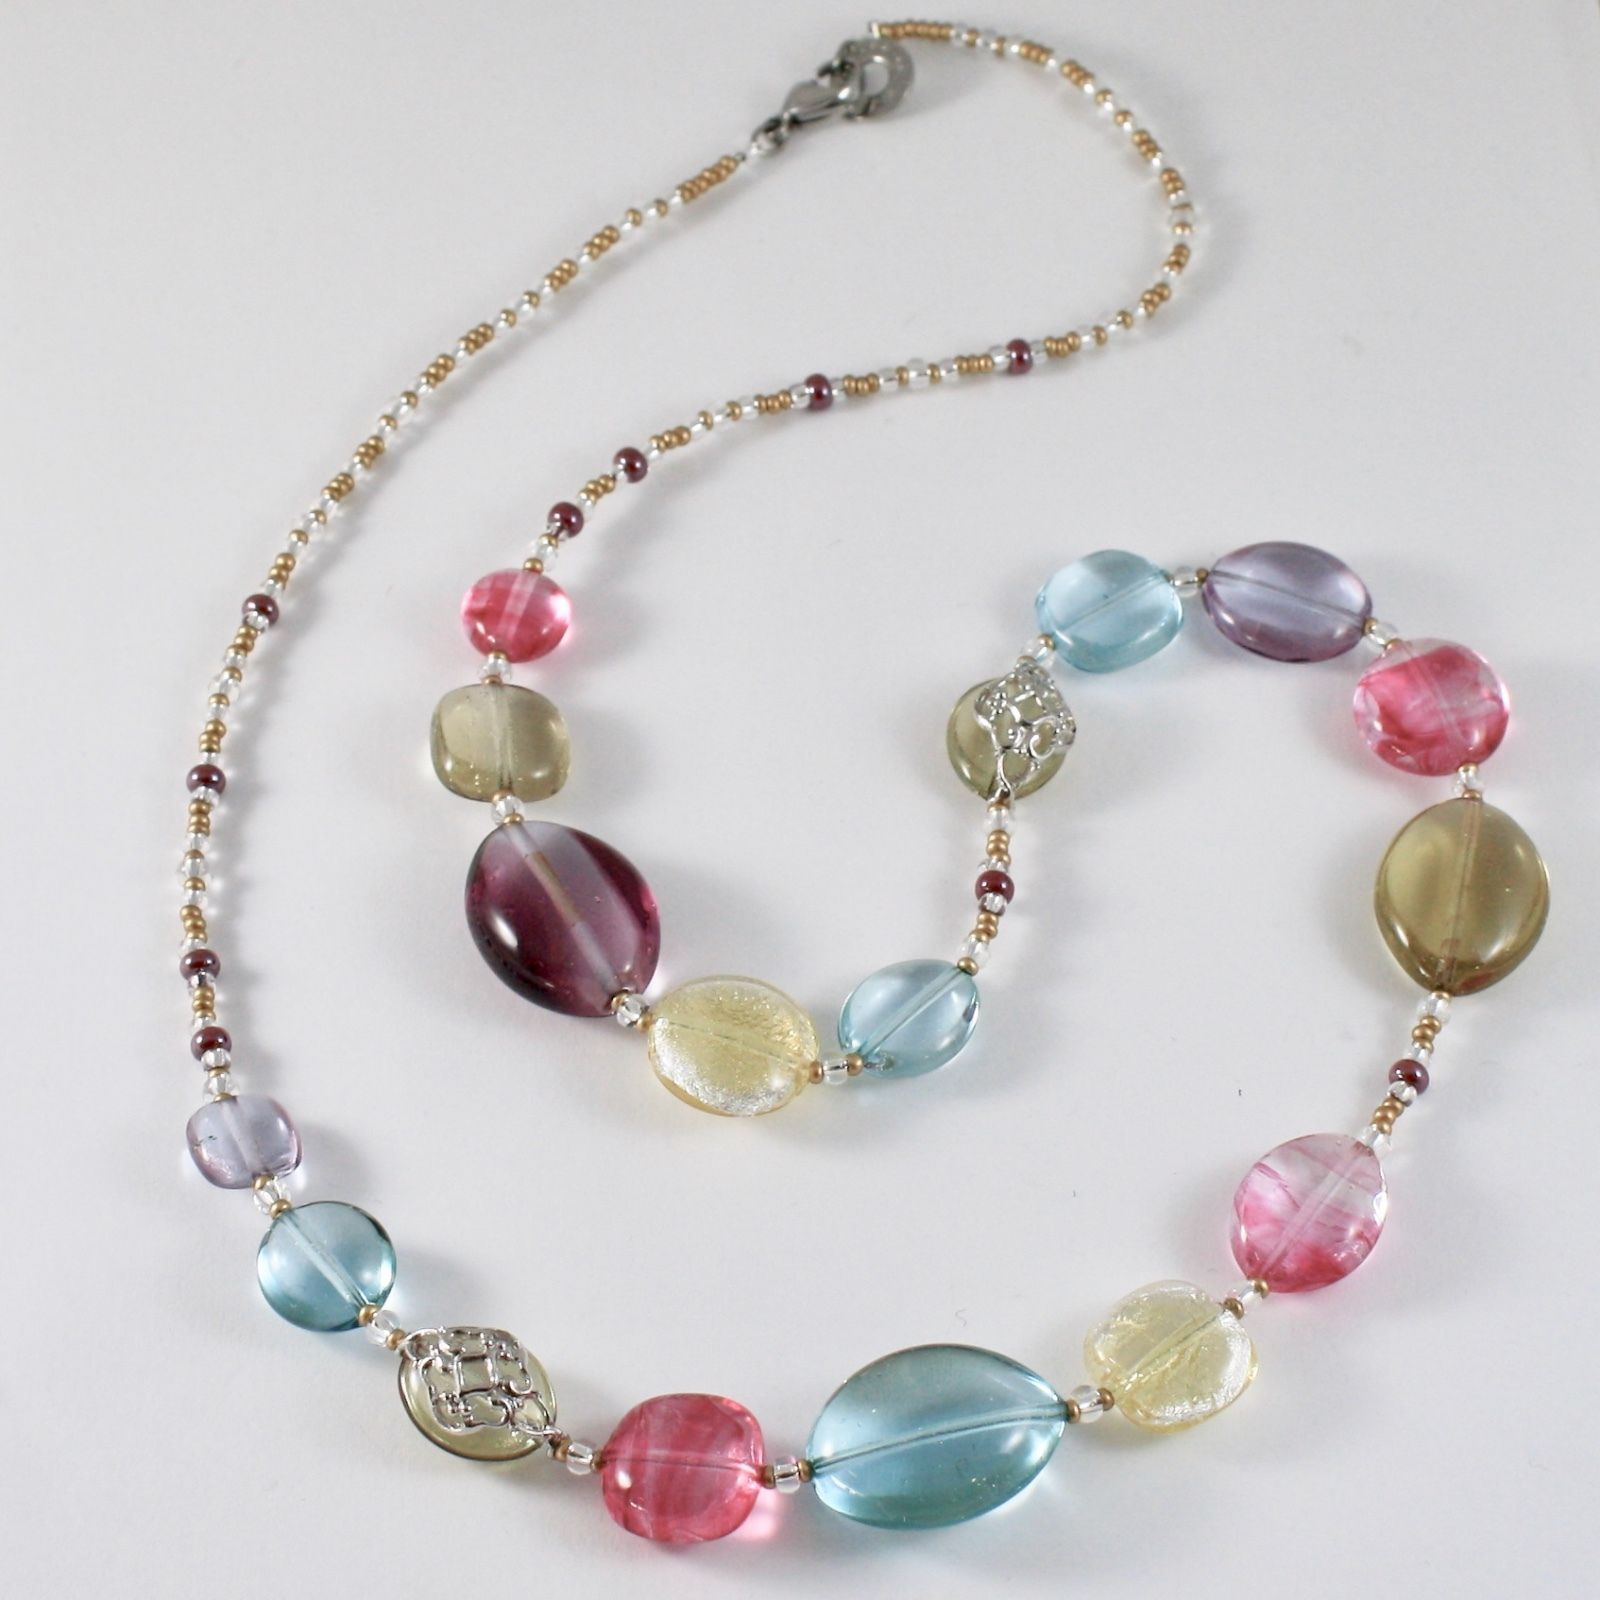 ANTICA MURRINA VENEZIA NECKLACE WITH PINK AND BLUE MURANO GLASS DISCS COA21A18